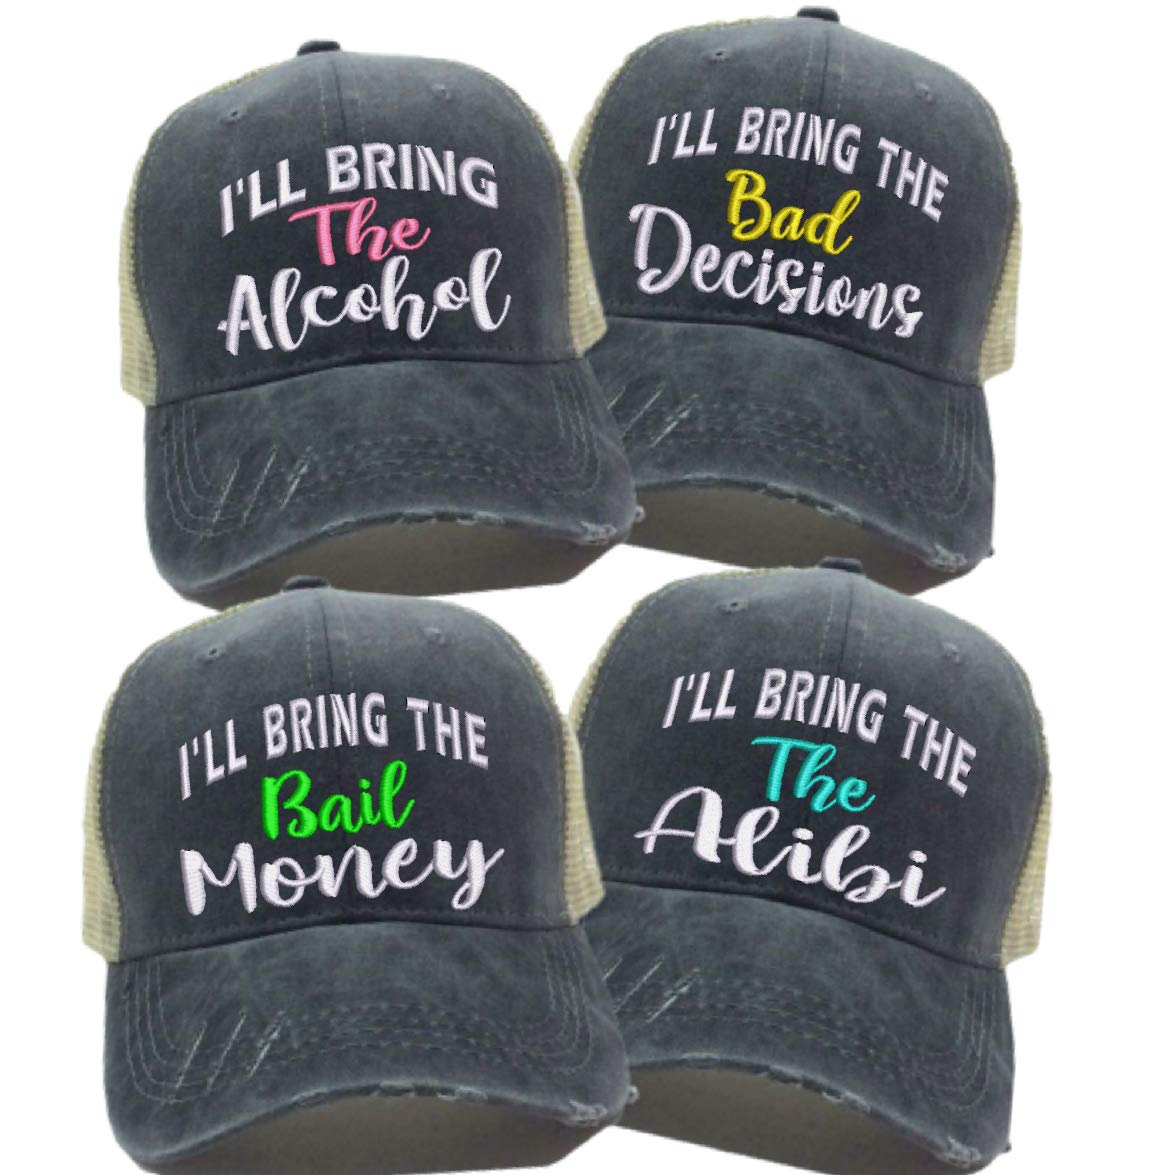 I'll Bring The Alcohol Bad Decisions Hat Custom Men Women's Bail Money Alibi Ball Cap (Black/Tan Hat - Set All 4 Sayings - Turquoise)